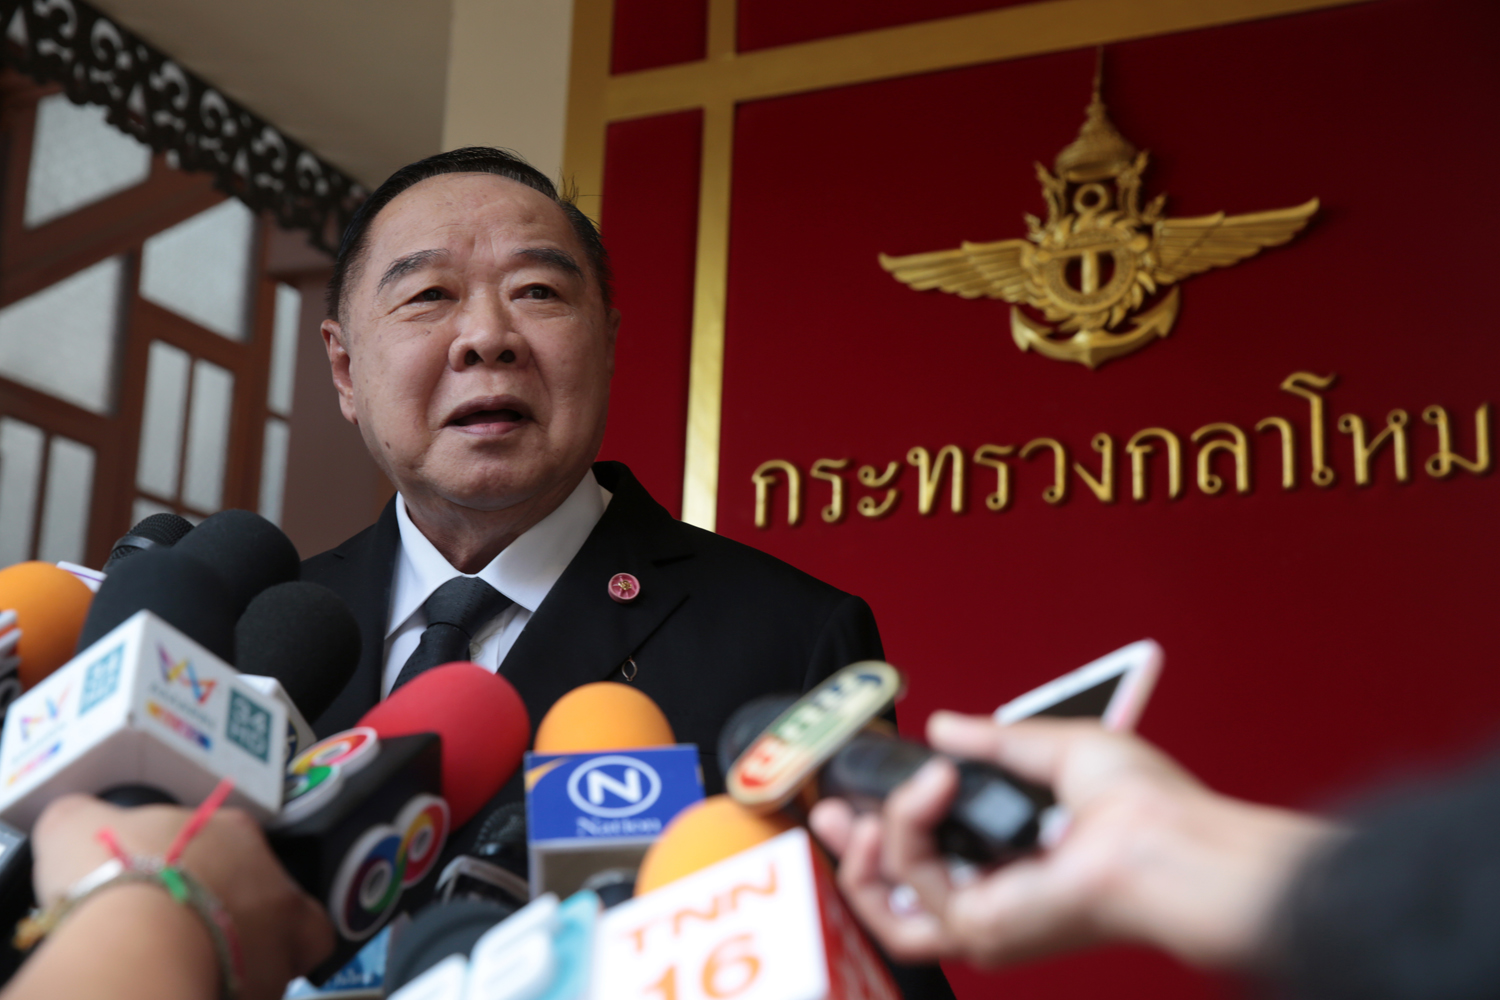 Deputy Prime Minister Gen Prawit Wongsuwon has given an ultimatum to his staff to flush out officials found complicit in human trafficking. (Bangkok Post file photo)